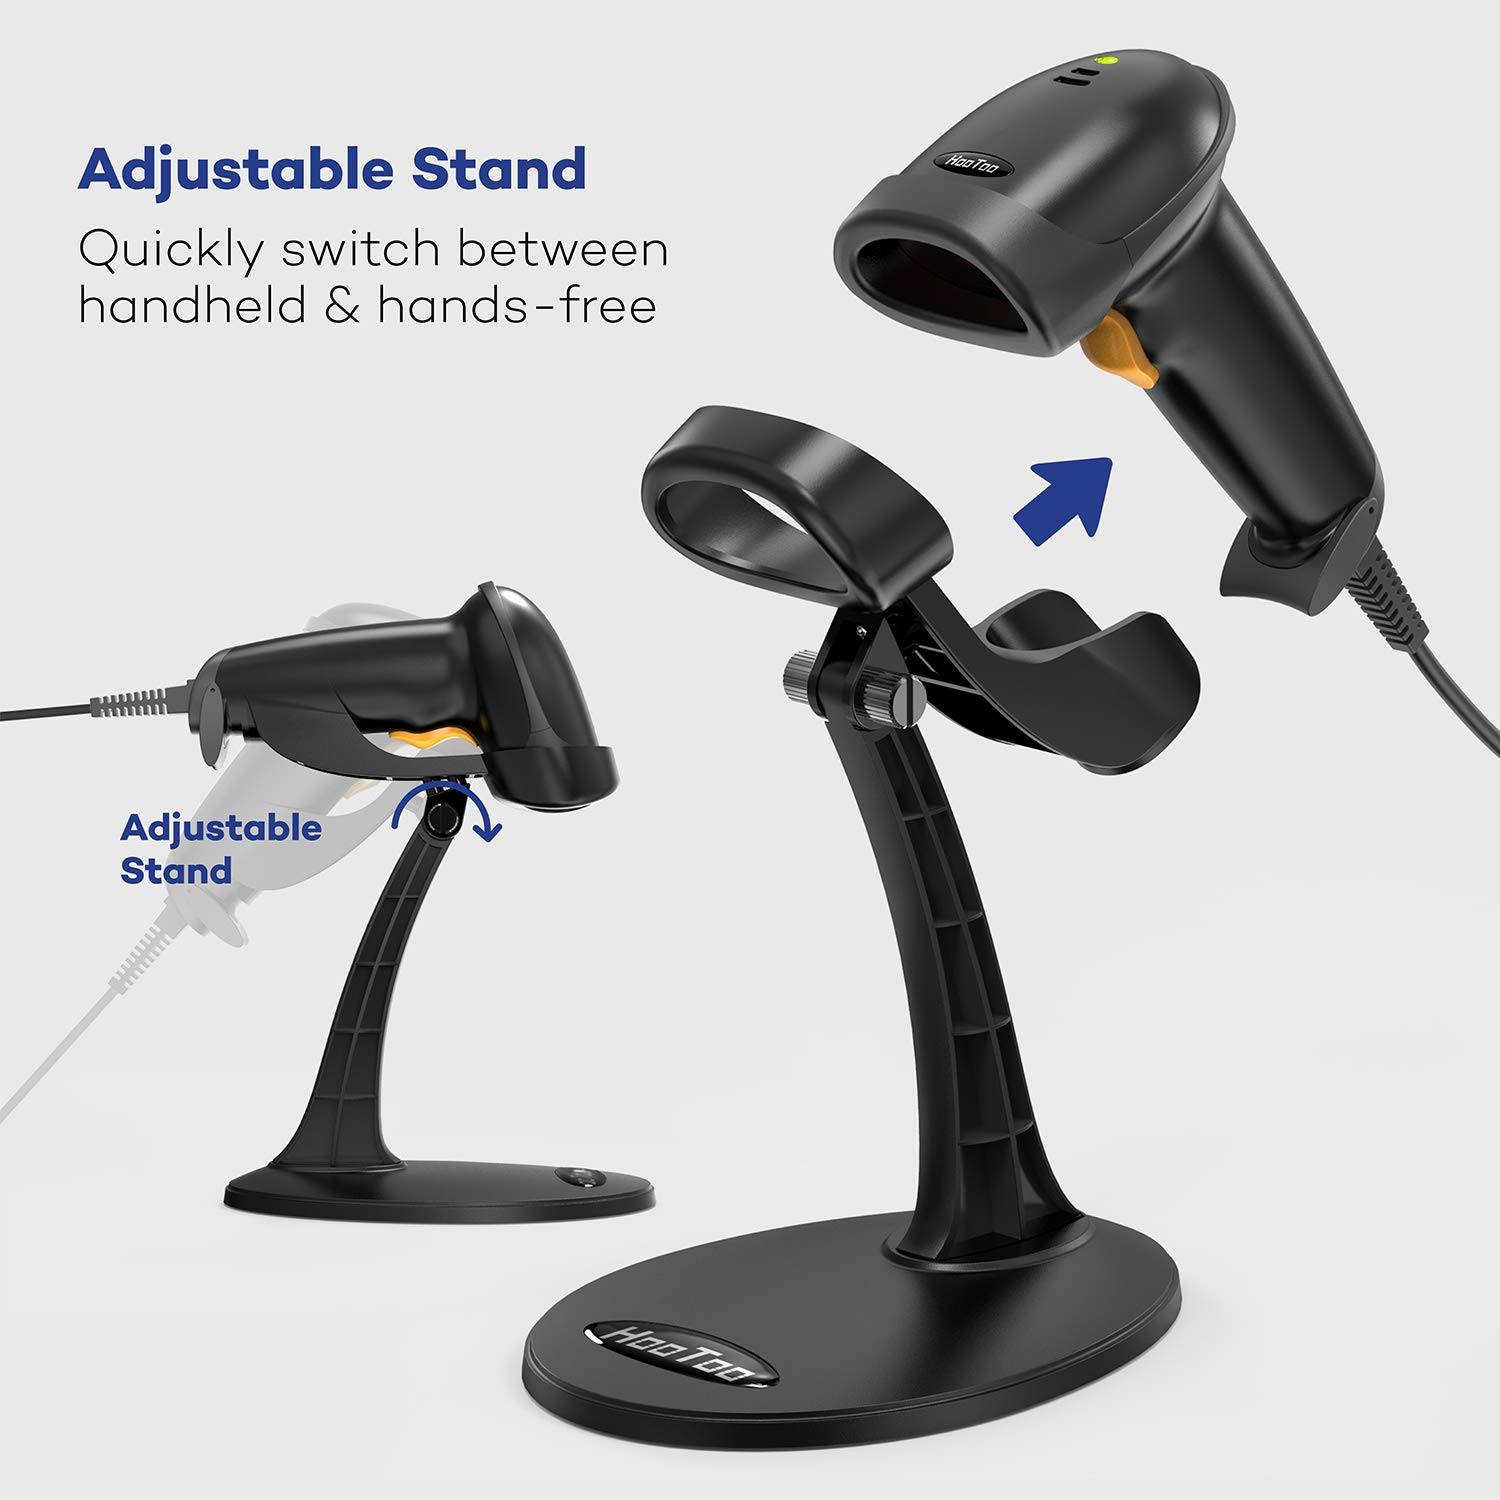 HooToo Barcode Scanner USB Barcode Scanner for Computer, Wired Barcode  Scanner with Stand, Fast and Precise Auto Scan Support Windows/Mac  OS/Android